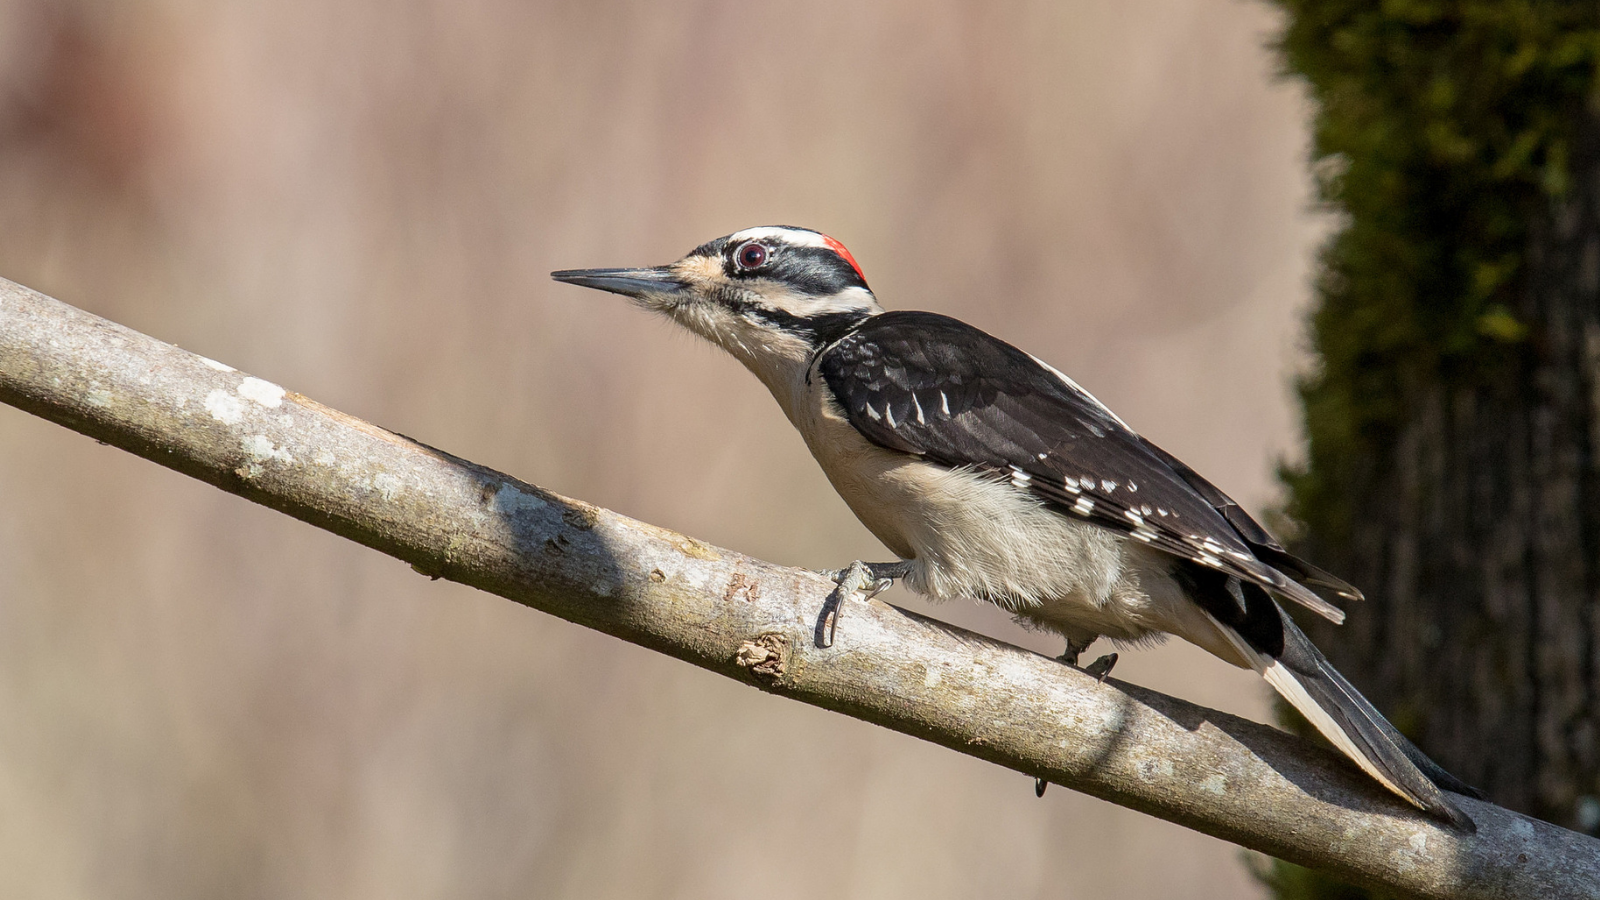 Hairy Woodpecker by Mick Thompson